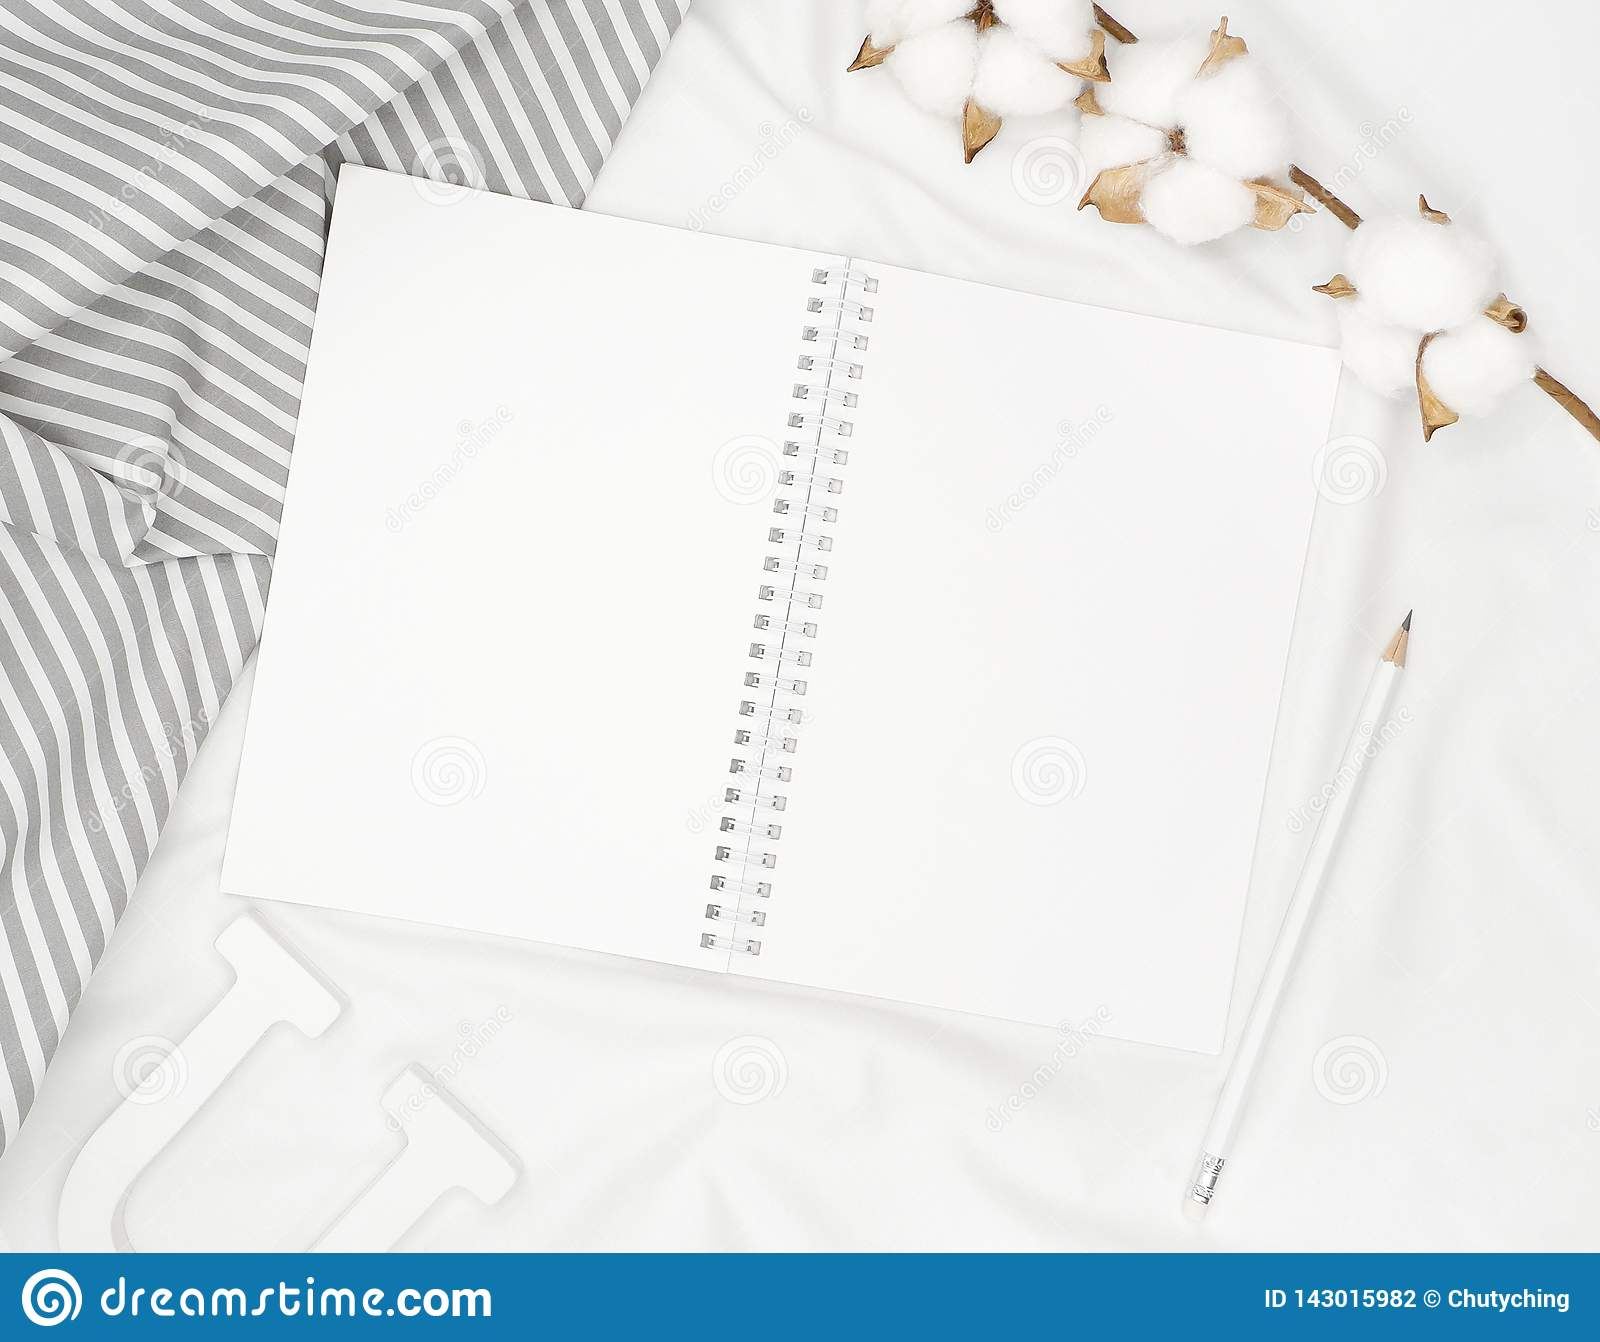 Blank white spiral notebook with pencil, cotton flowers, grey stripe fabric and wooden letter on white bed sheet.